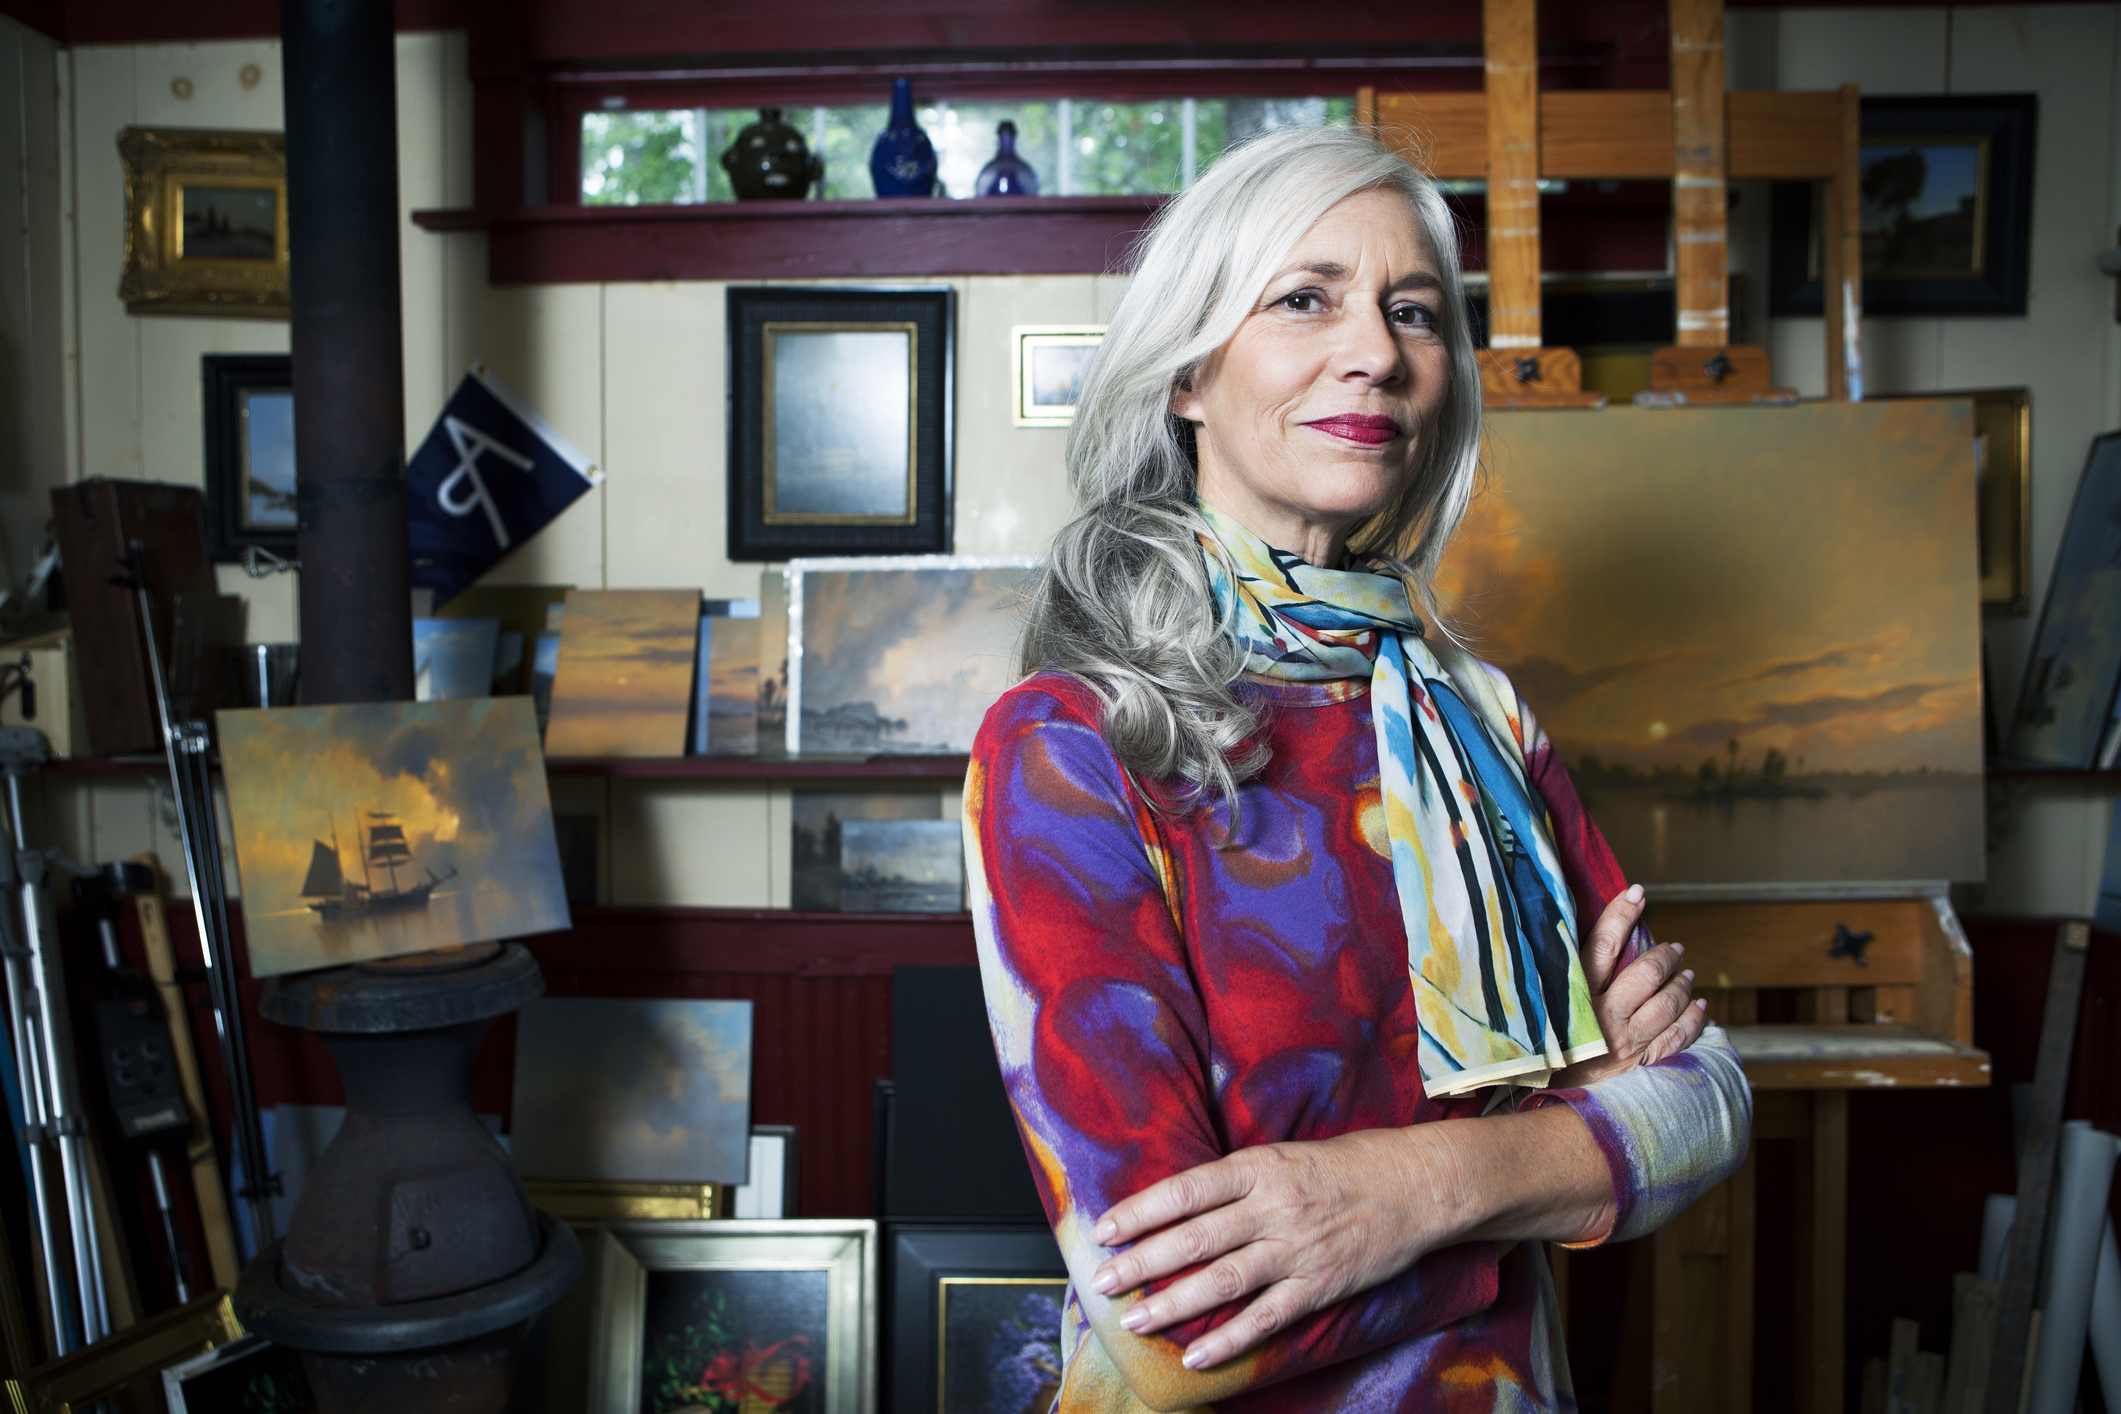 Female painter from the baby boomer generation with long, white hair posing in front of her paintings.